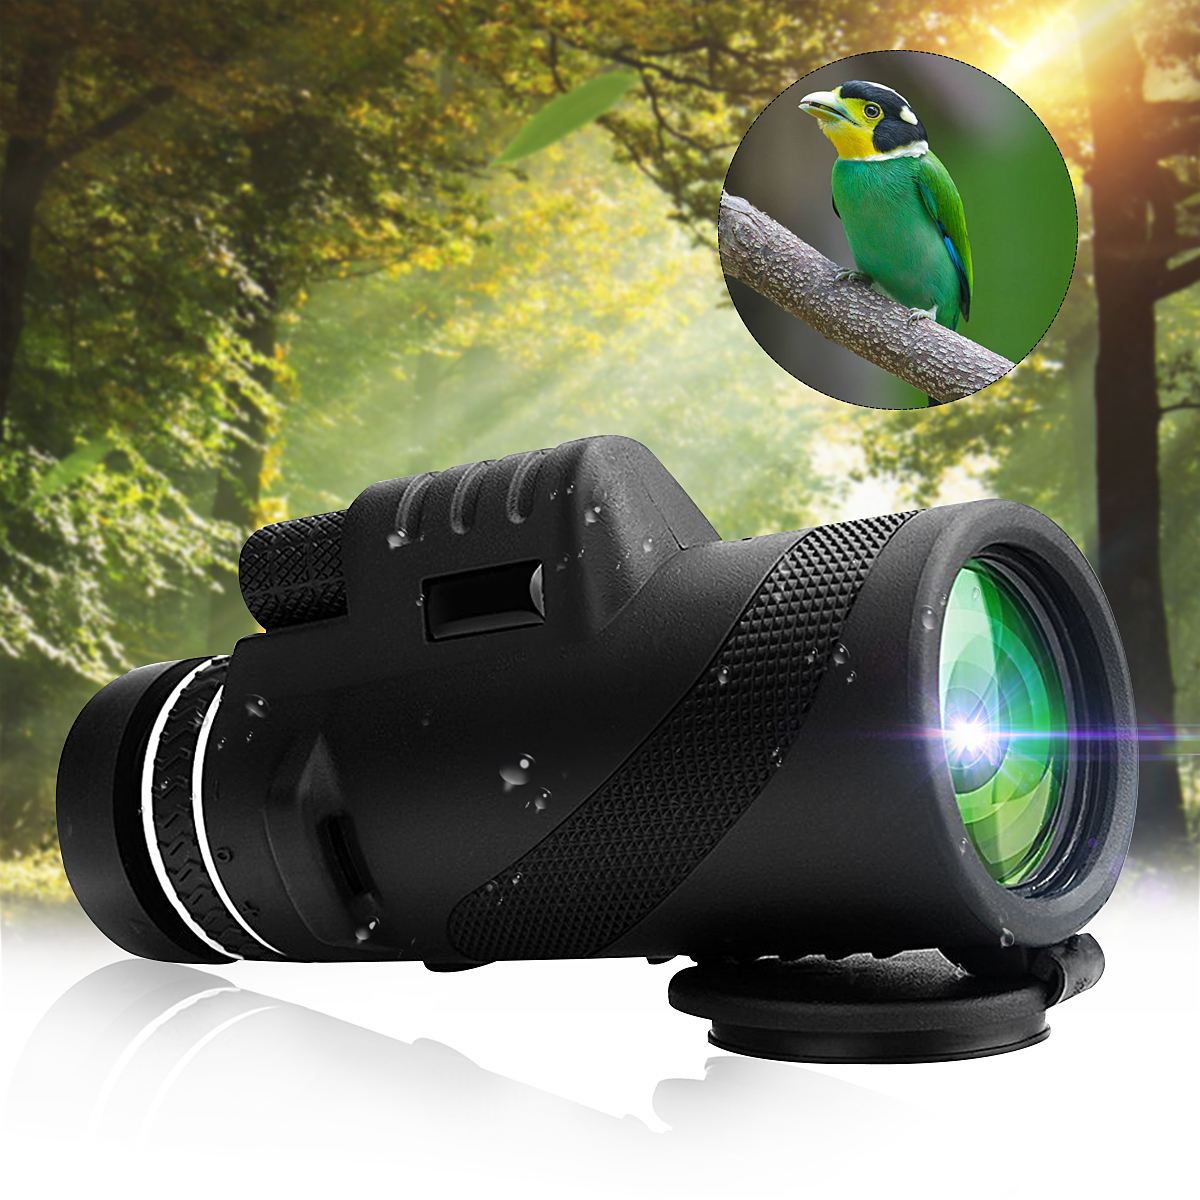 40X60 HD Portable Monocular Telescope Day Night Vision Dual Focus Optical Zoom Waterproof For Hiking Camping Hunting Sightseeing